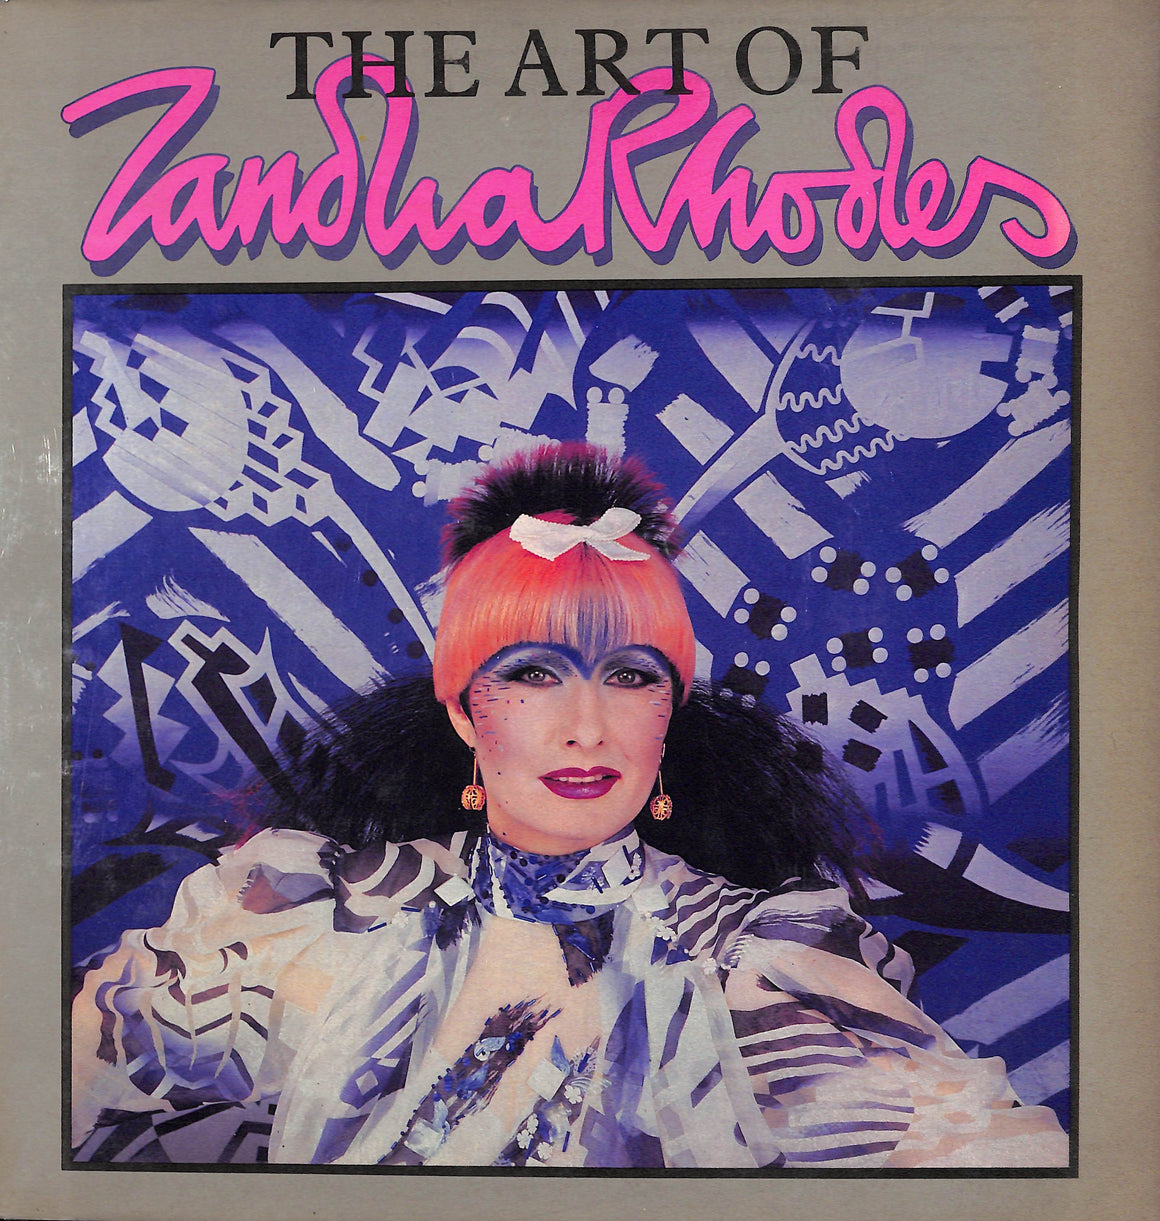 'The Art of Zandra Rhodes' 1985